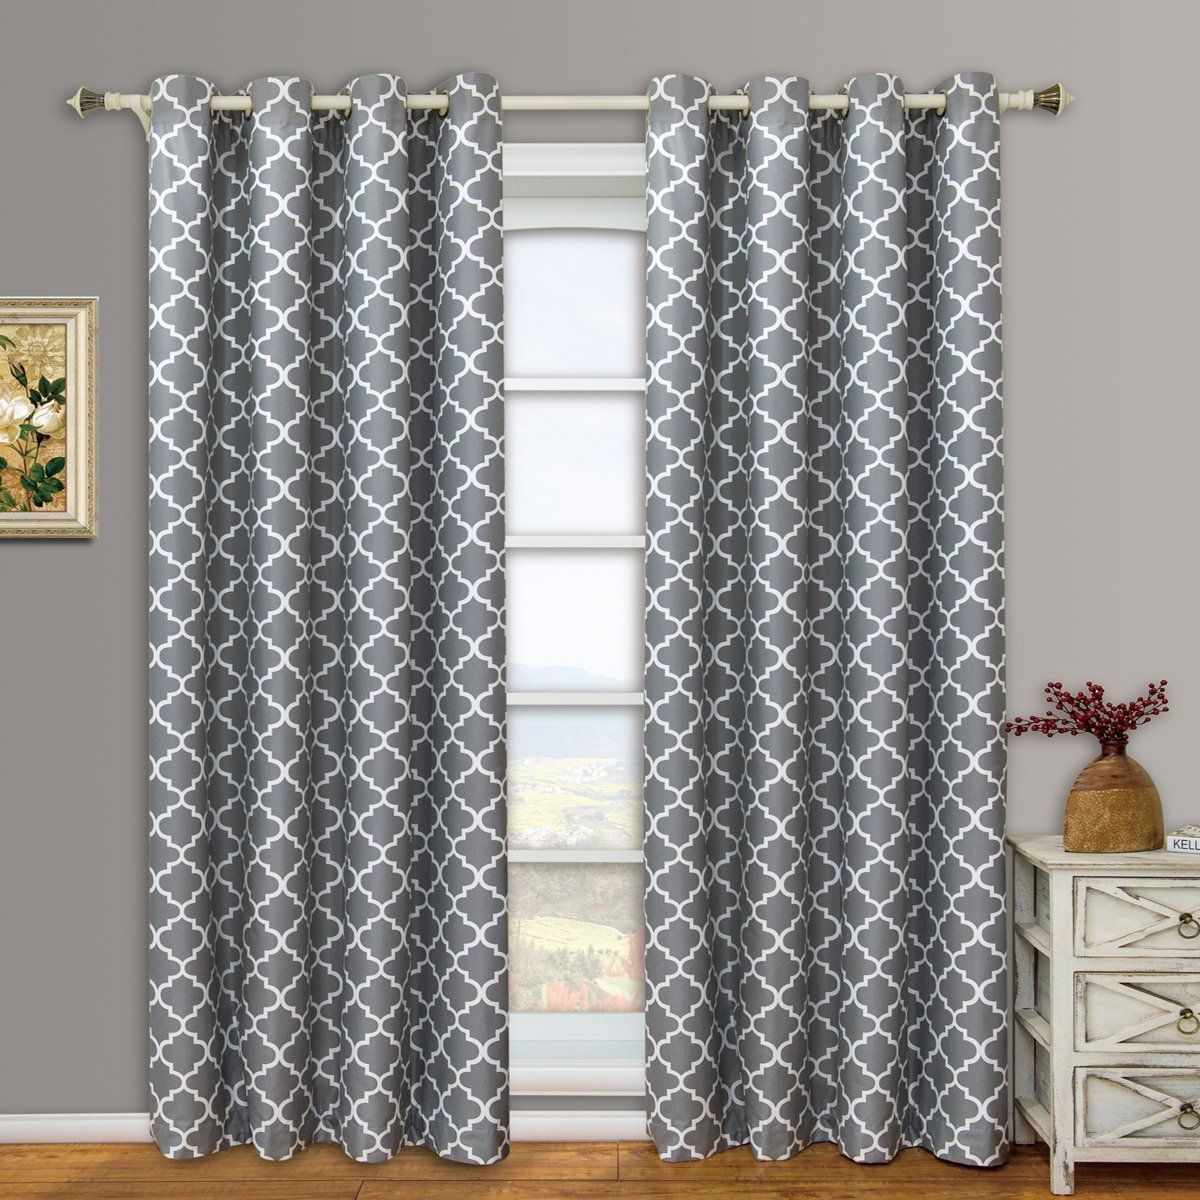 size paris backed picture paisley large curtains thermal grommet inch at me walmartthermal rare damask hlc curtain sale sears of inspirations walmart com amazon blackout drapes for and or insulated